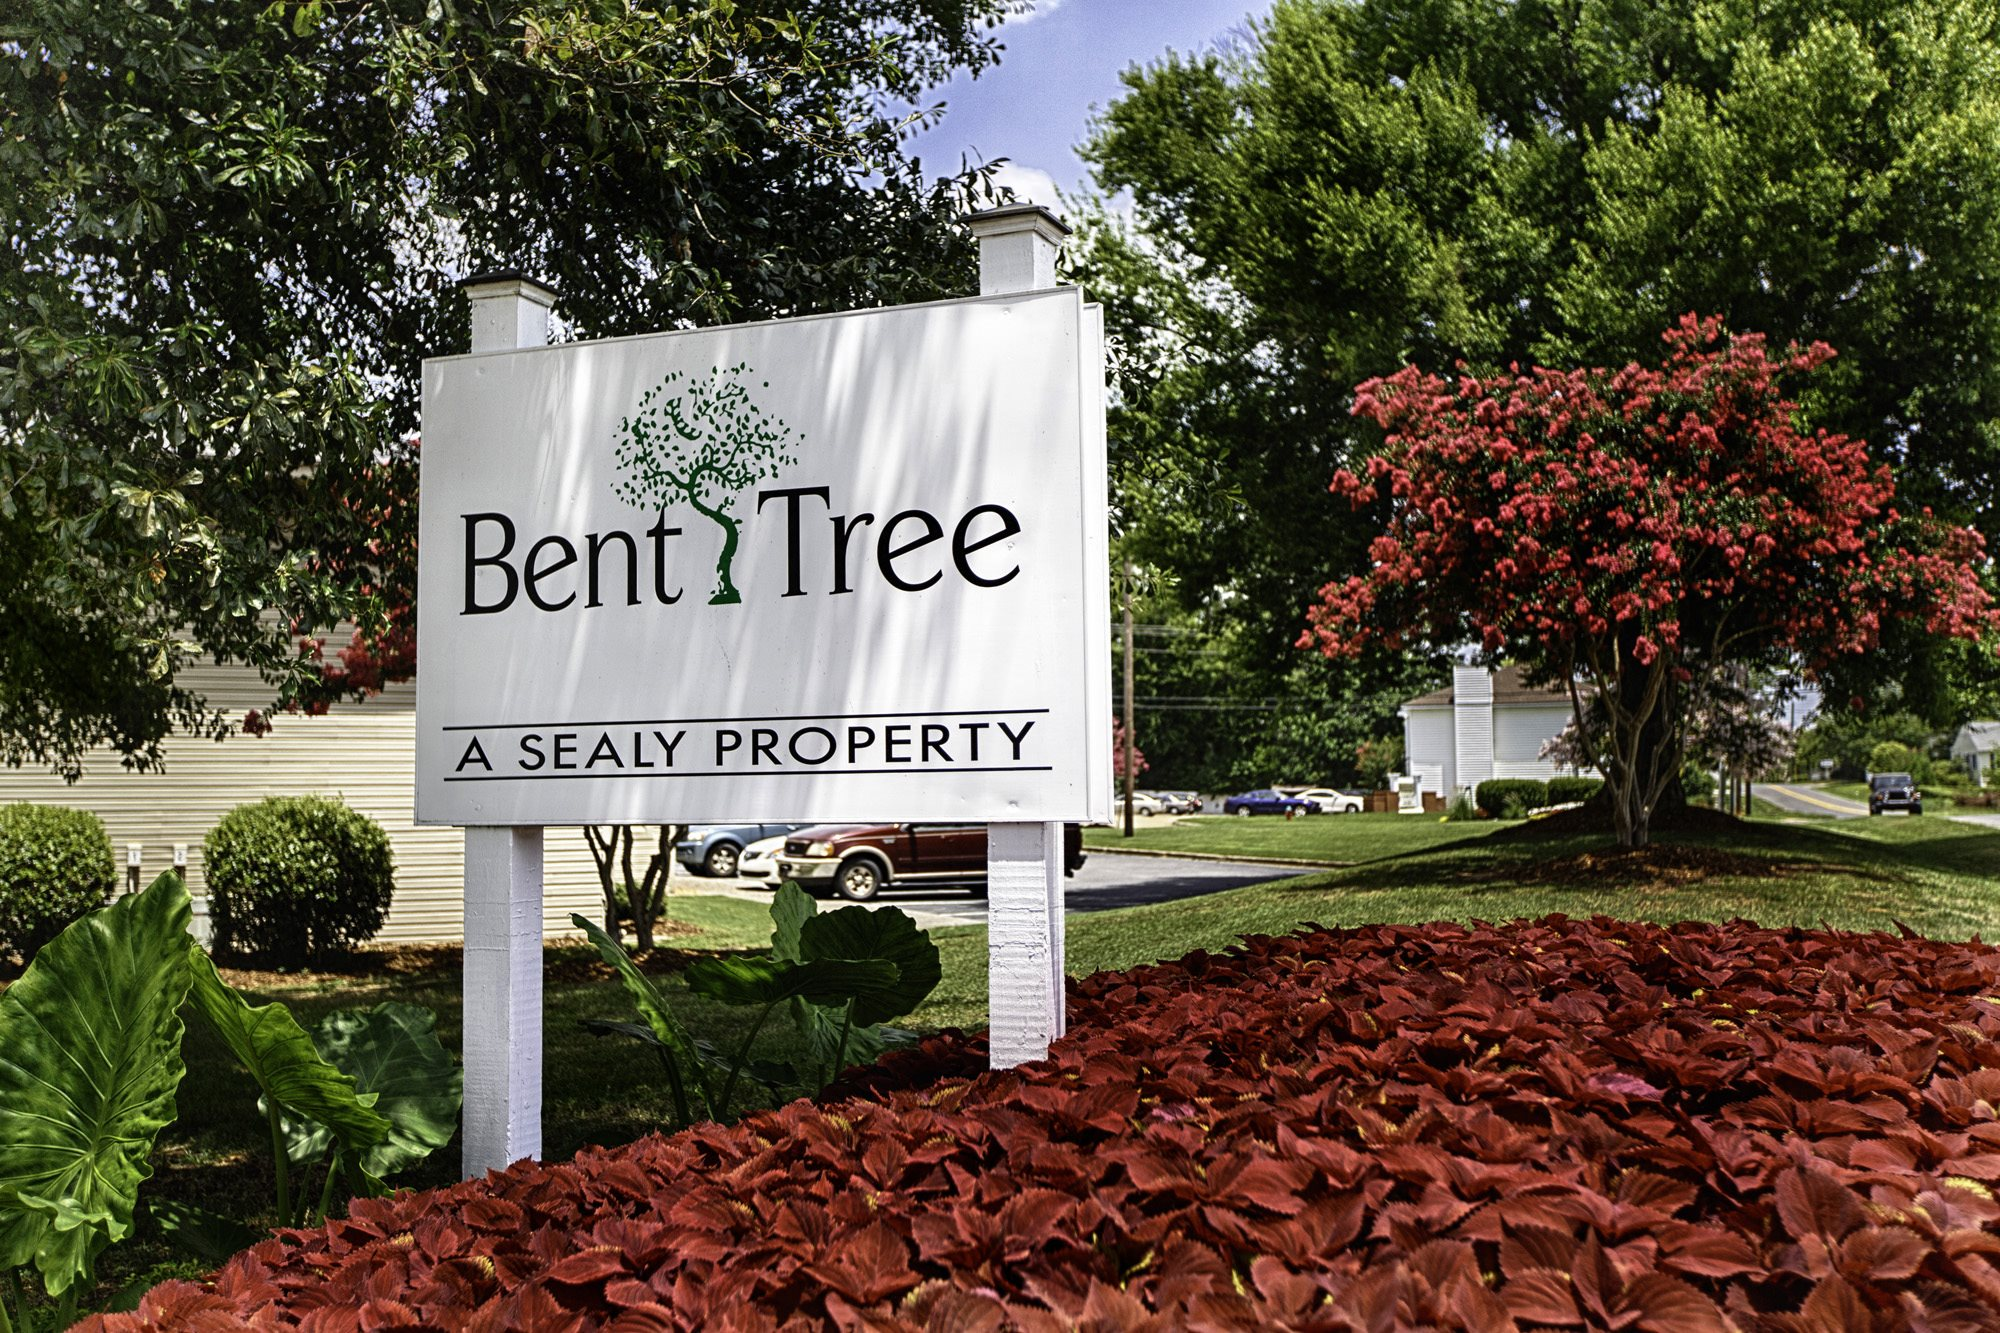 Photos and Video of Bent Tree Apartment Homes in Tuscaloosa, AL